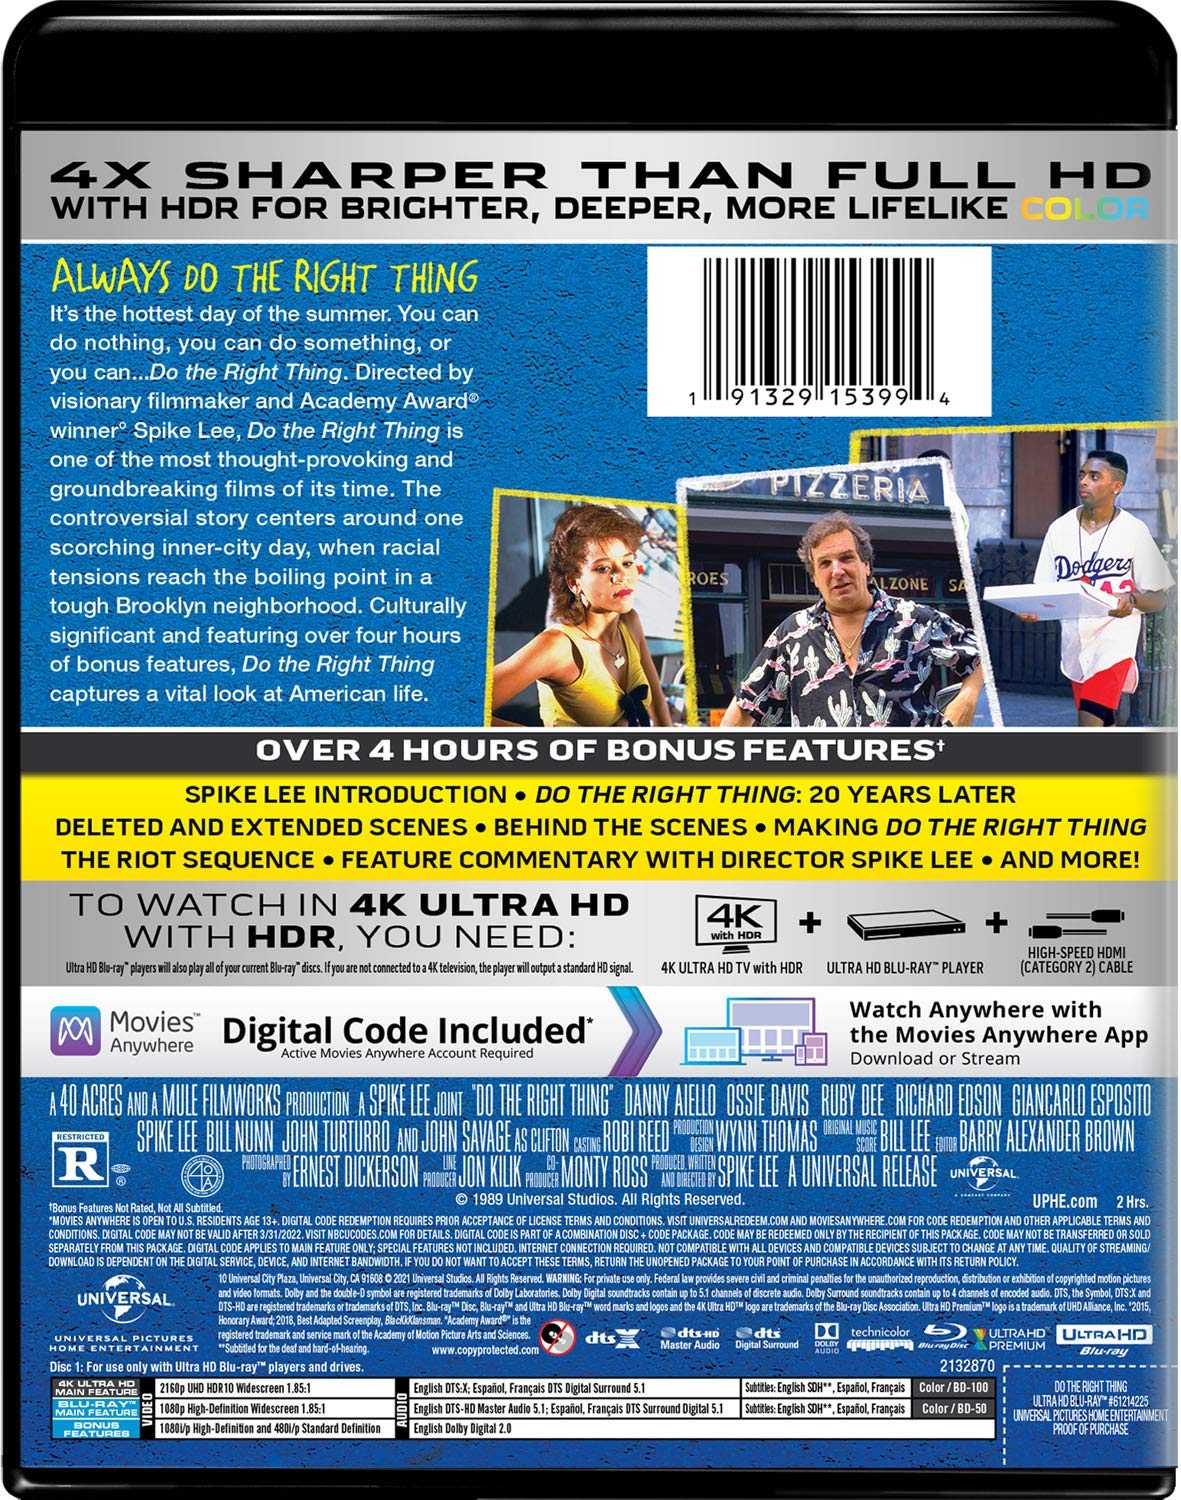 Do the Right Thing 4k Blu-ray back